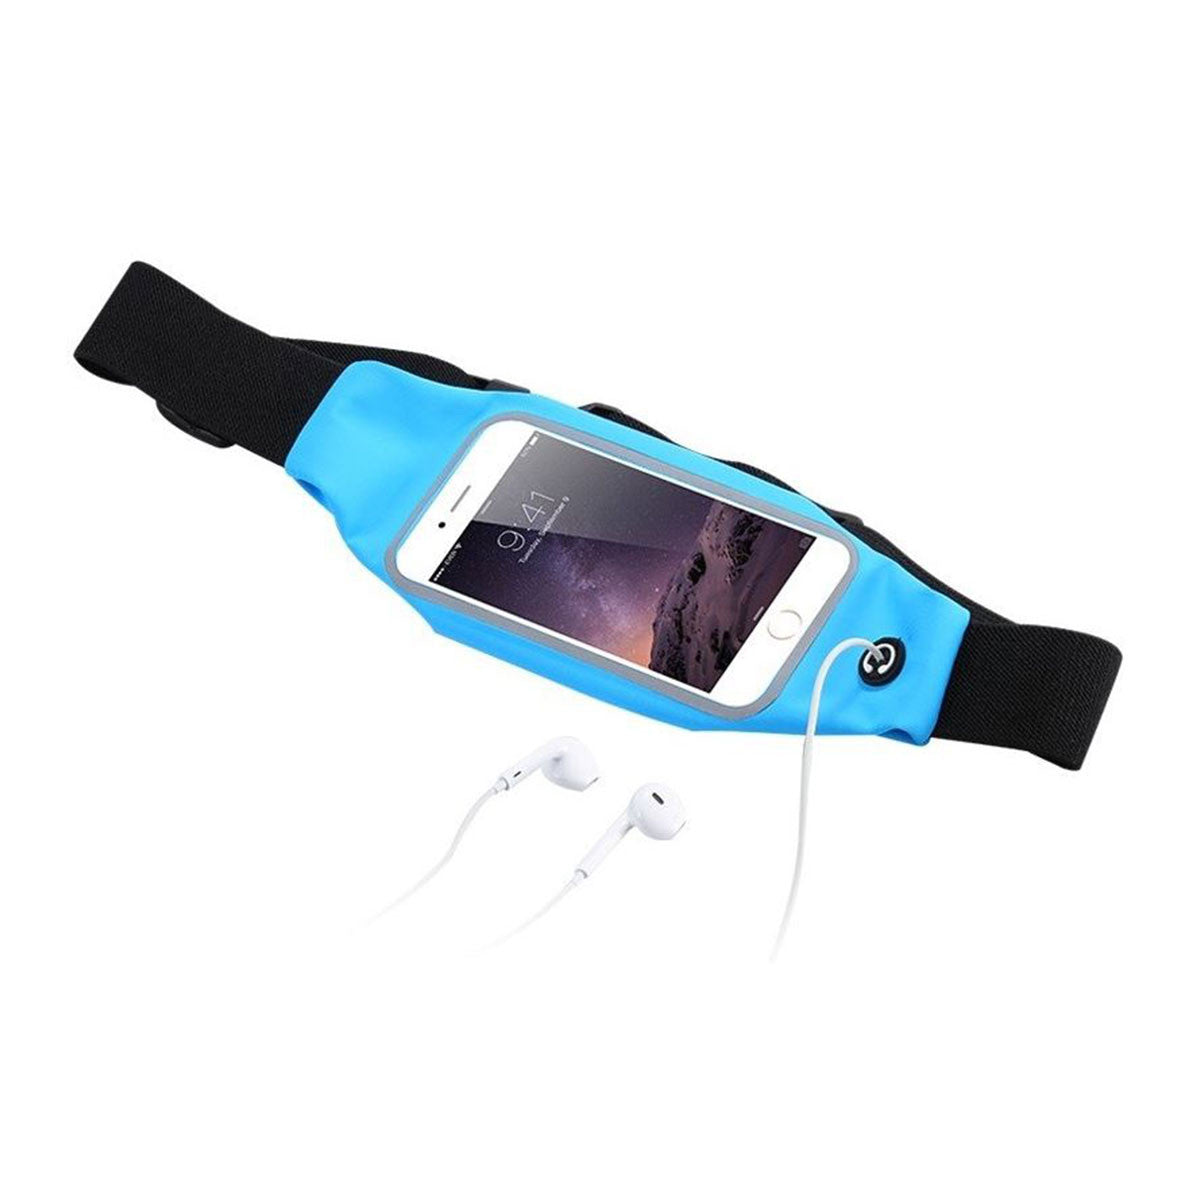 Mobile Mob Gym Running Training Waist Band Pouch Bum Bag Headphones